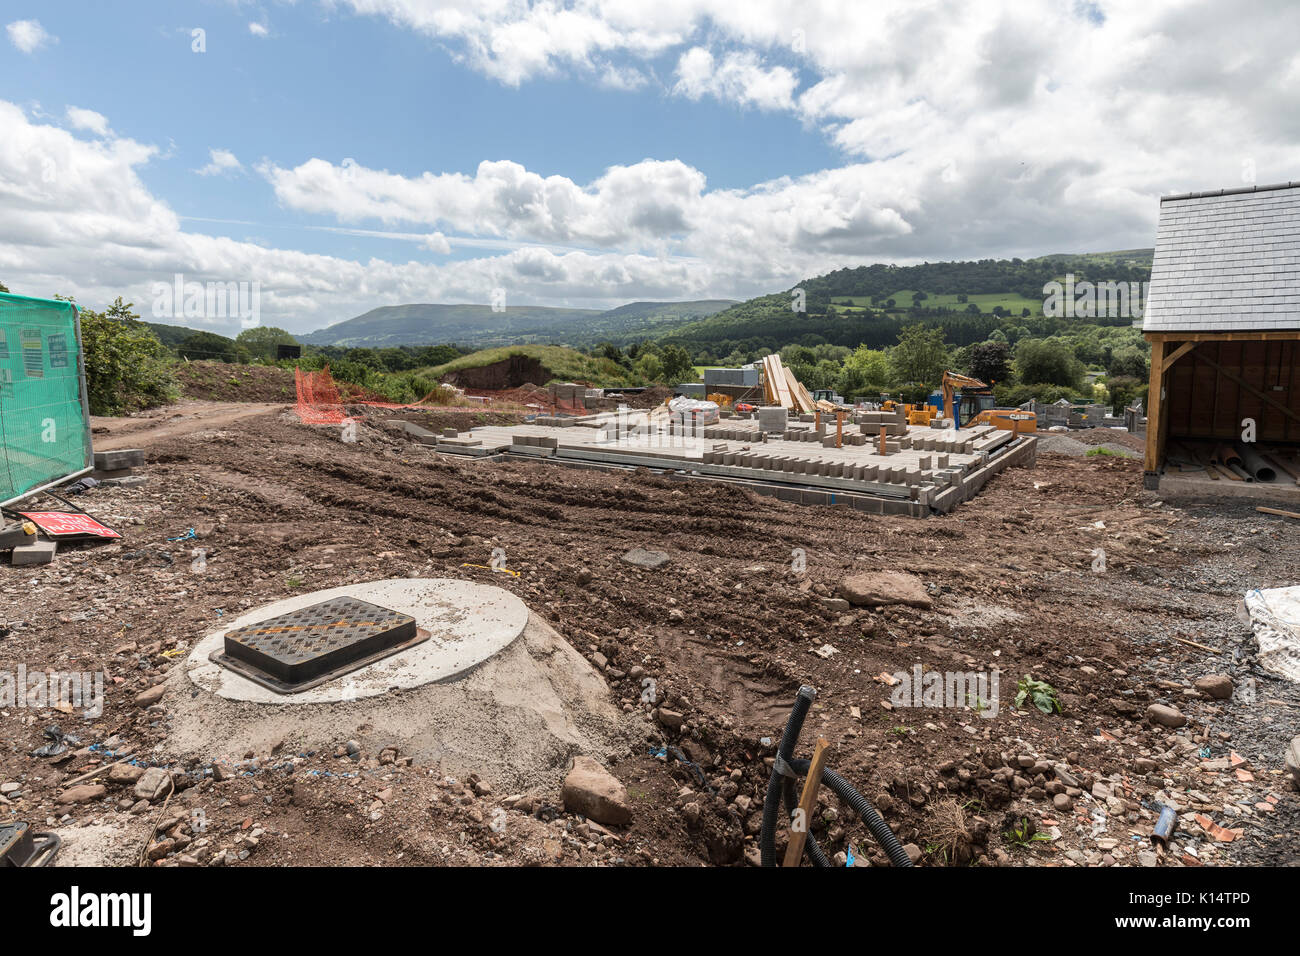 Building site with drainage cover for newbuild houses, Crickhowell, Wales, UK - Stock Image